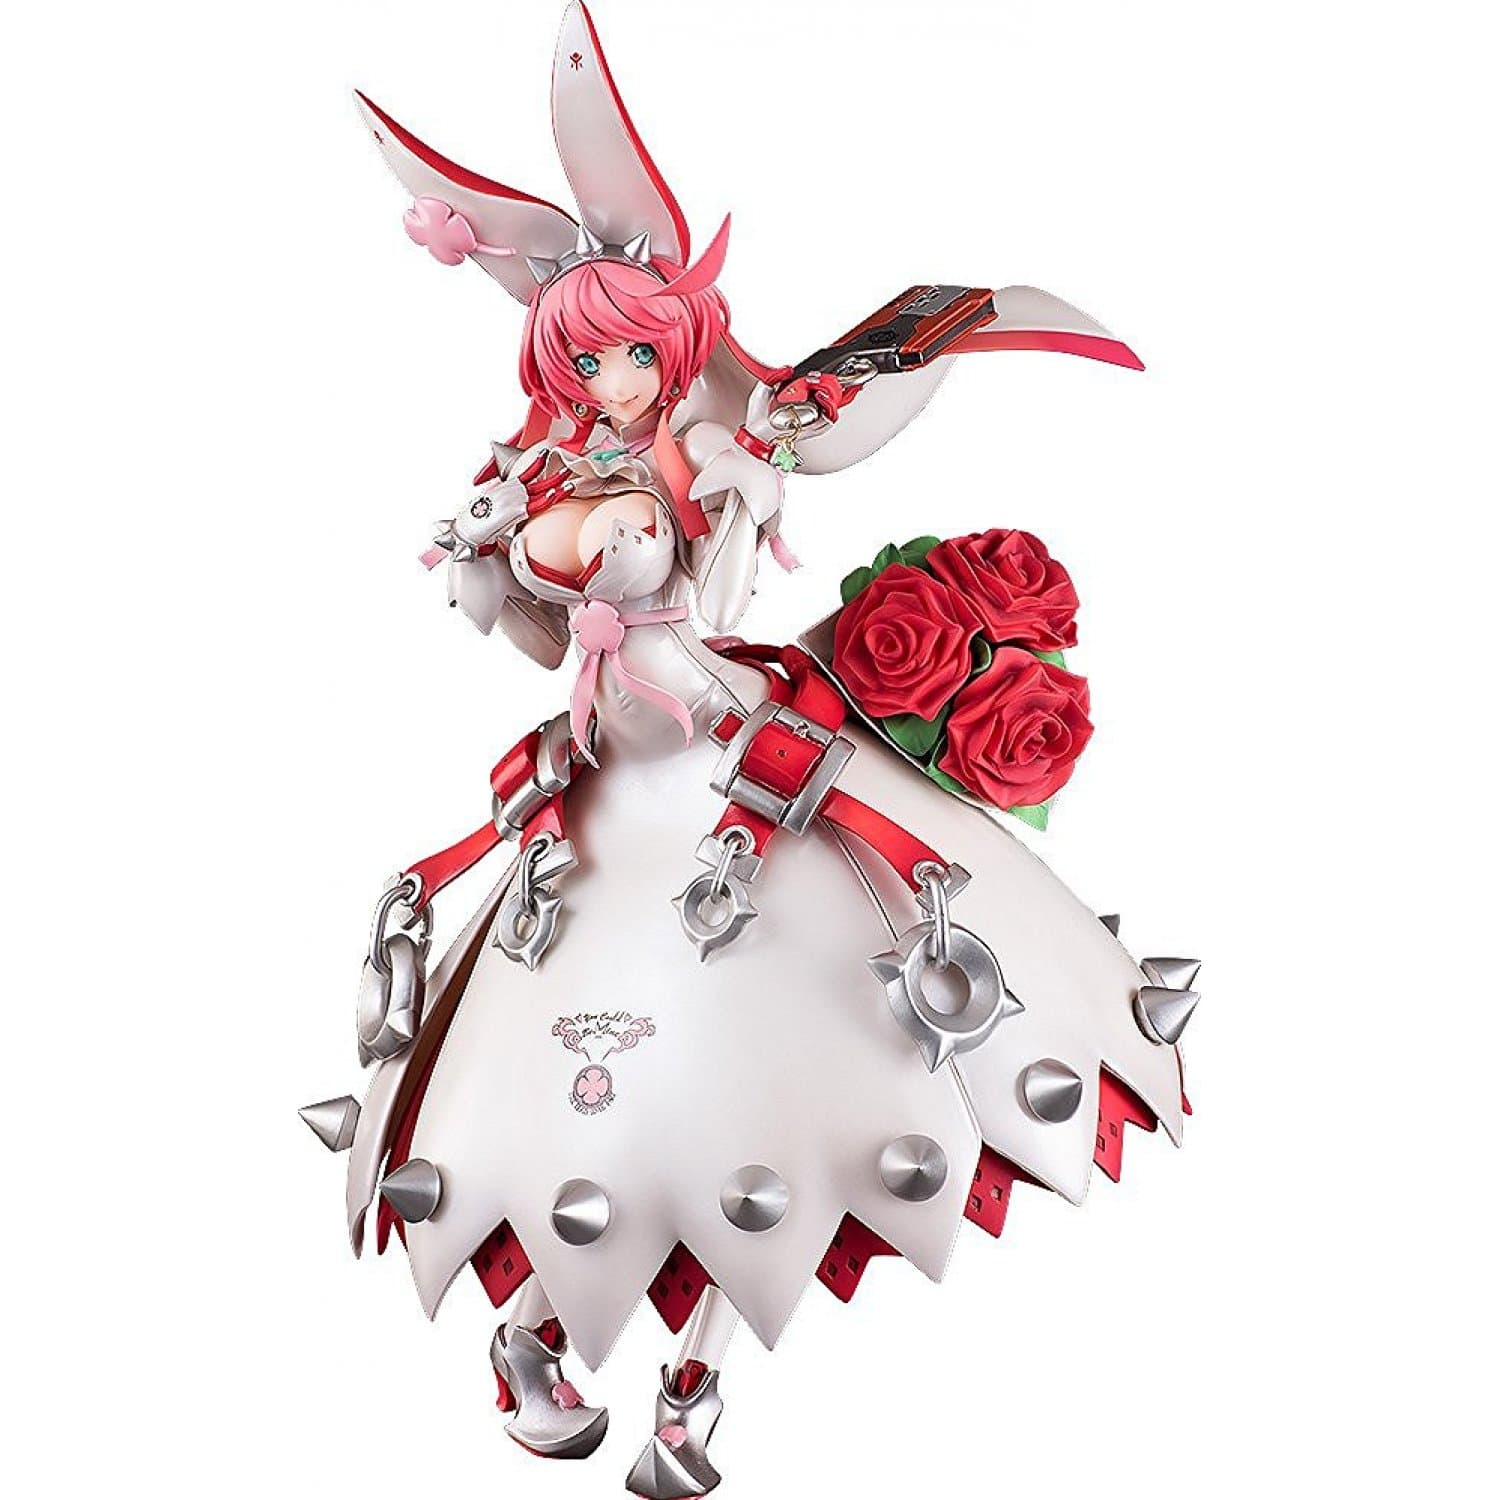 Guilty Gear: Elphelt Valentine Full hd wallpapers